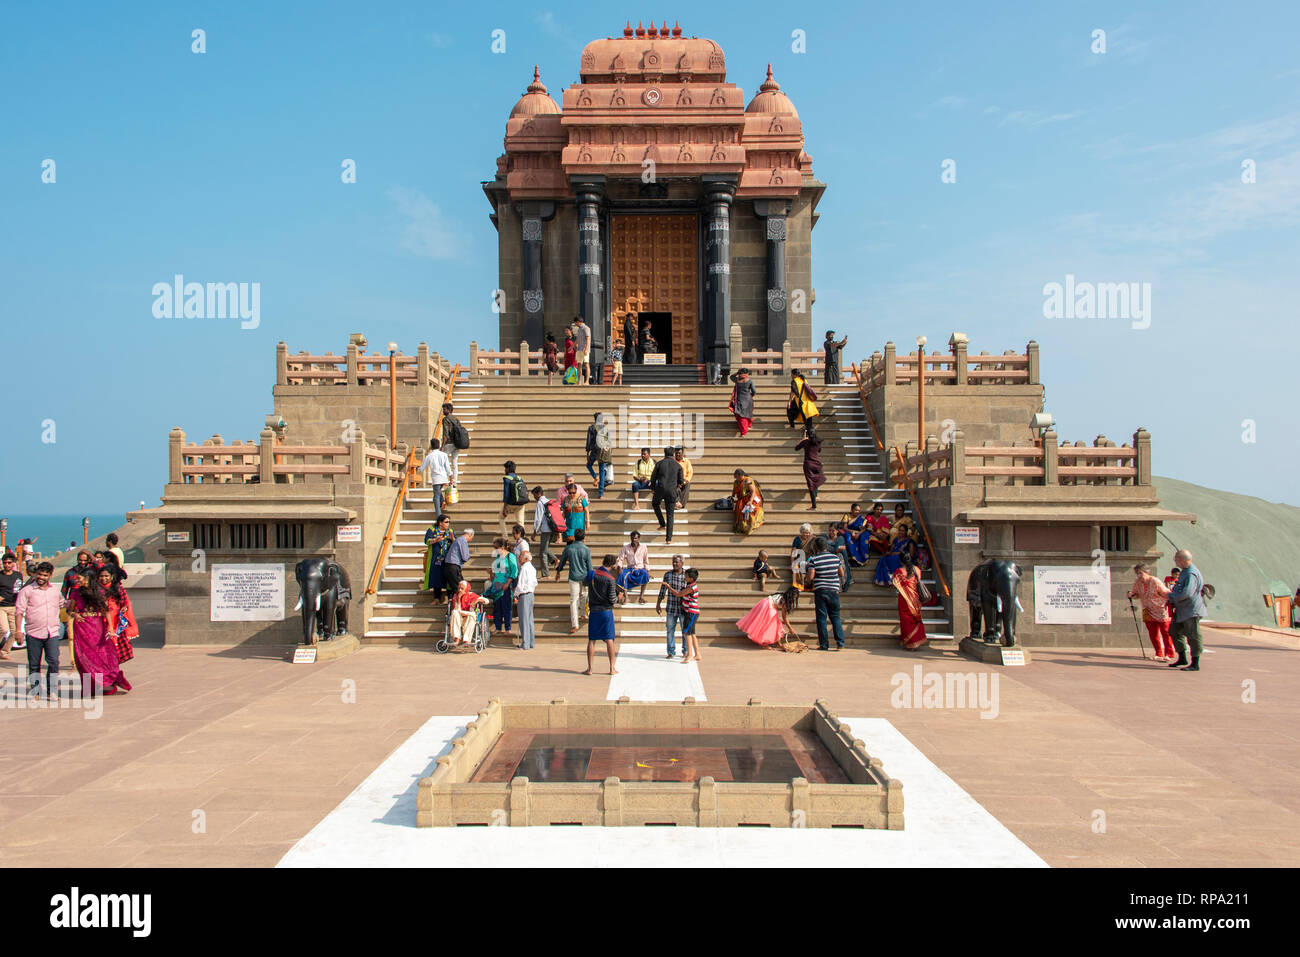 Tourists and local people visiting the Vivekananda Rock Memorial in Kanyakumari on a sunny day with blue sky. - Stock Image